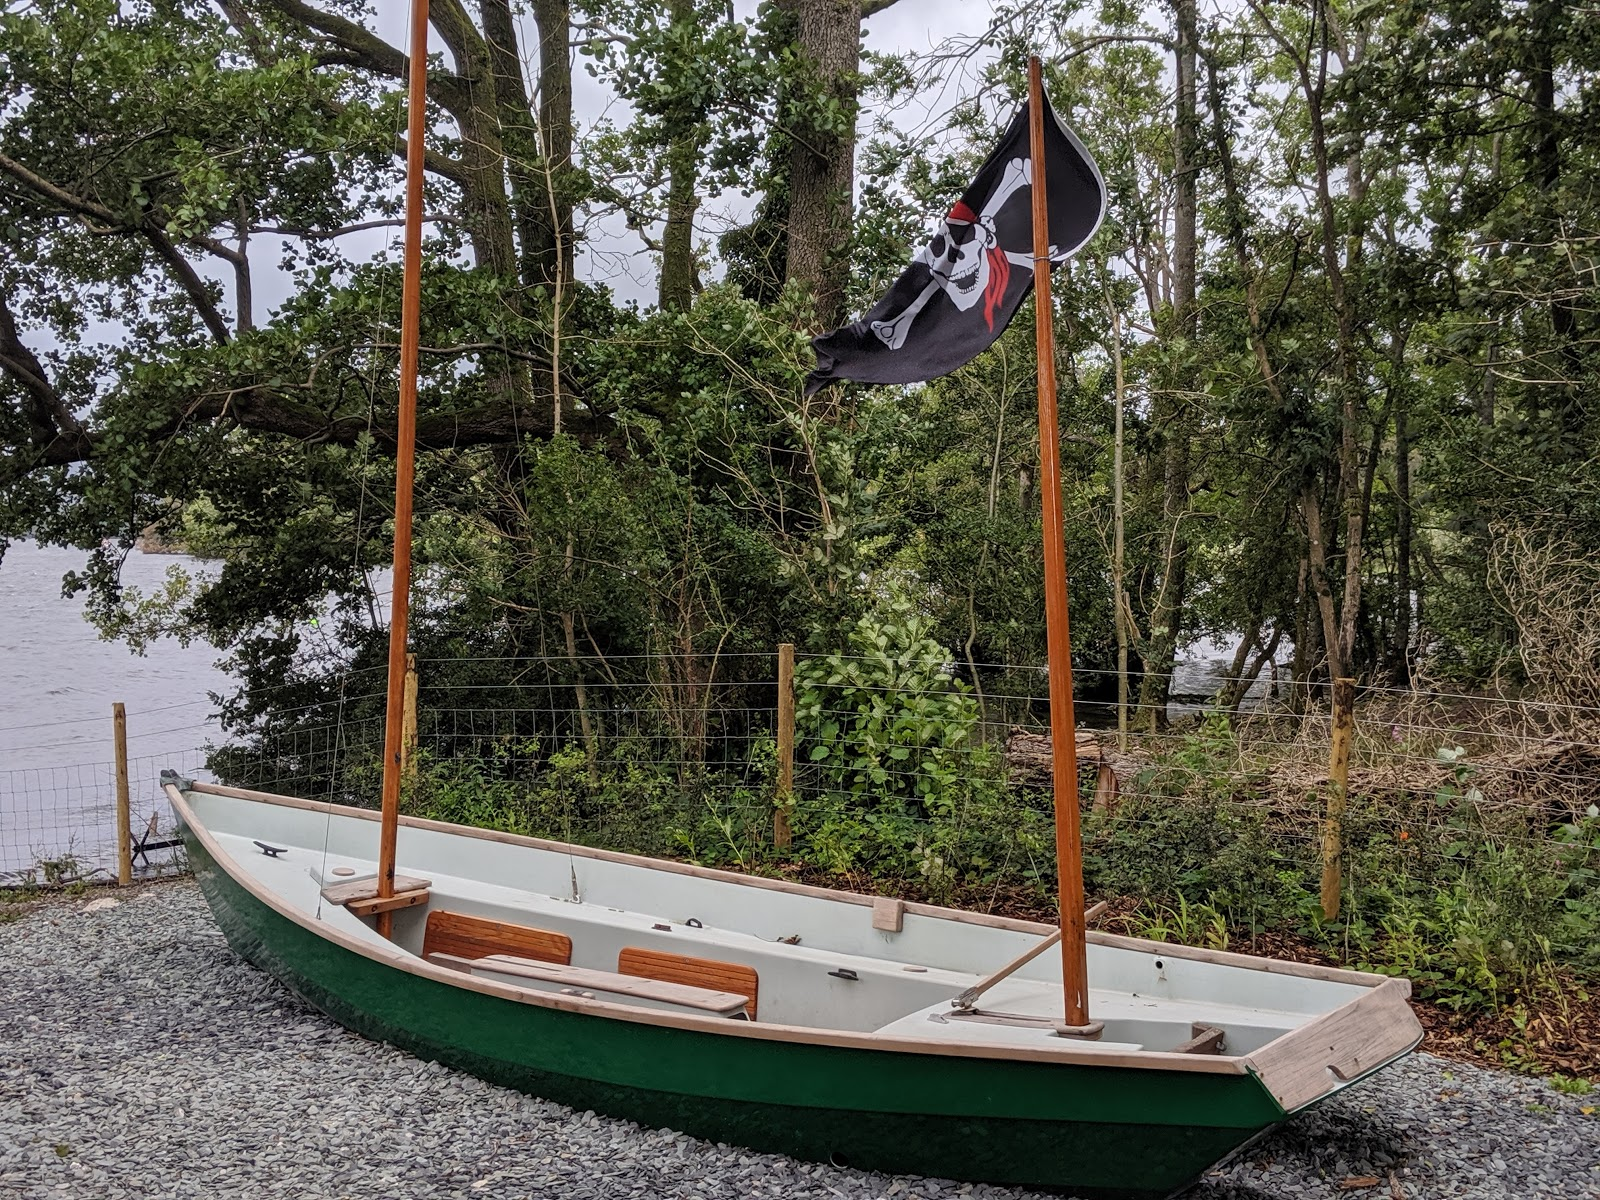 13 Reasons to Visit Windermere Jetty with Kids - pirate ship by lake